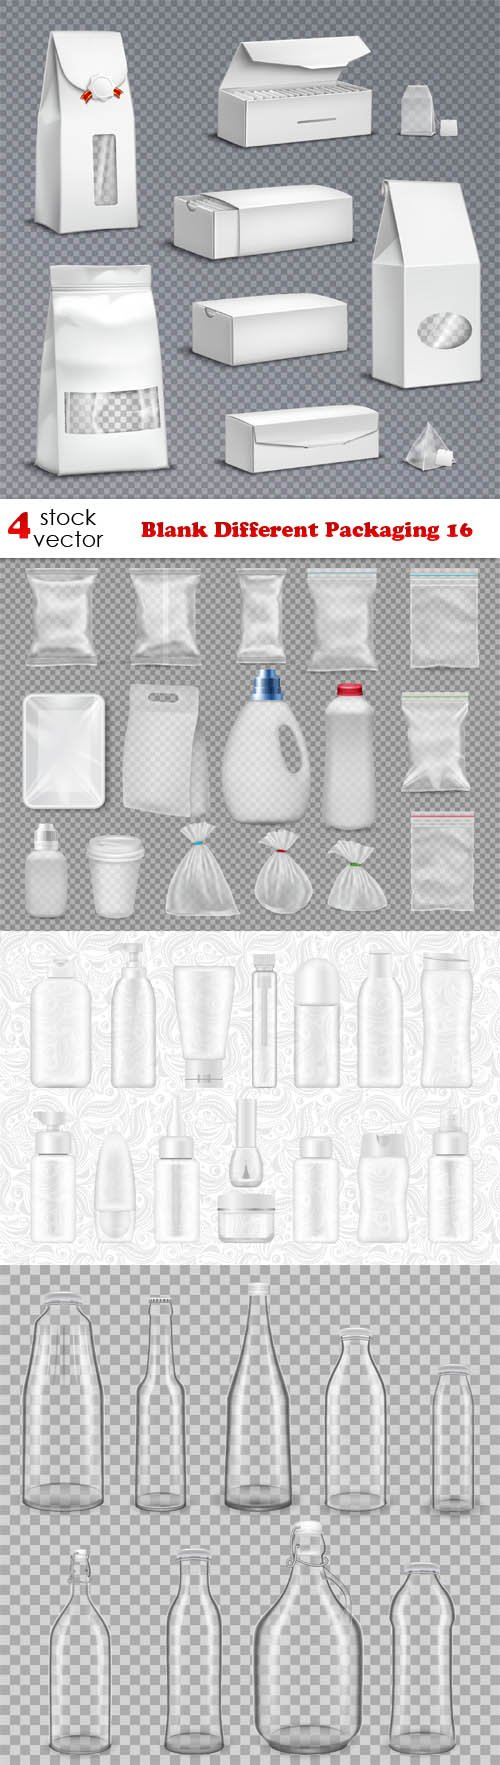 Vectors - Blank Different Packaging 16